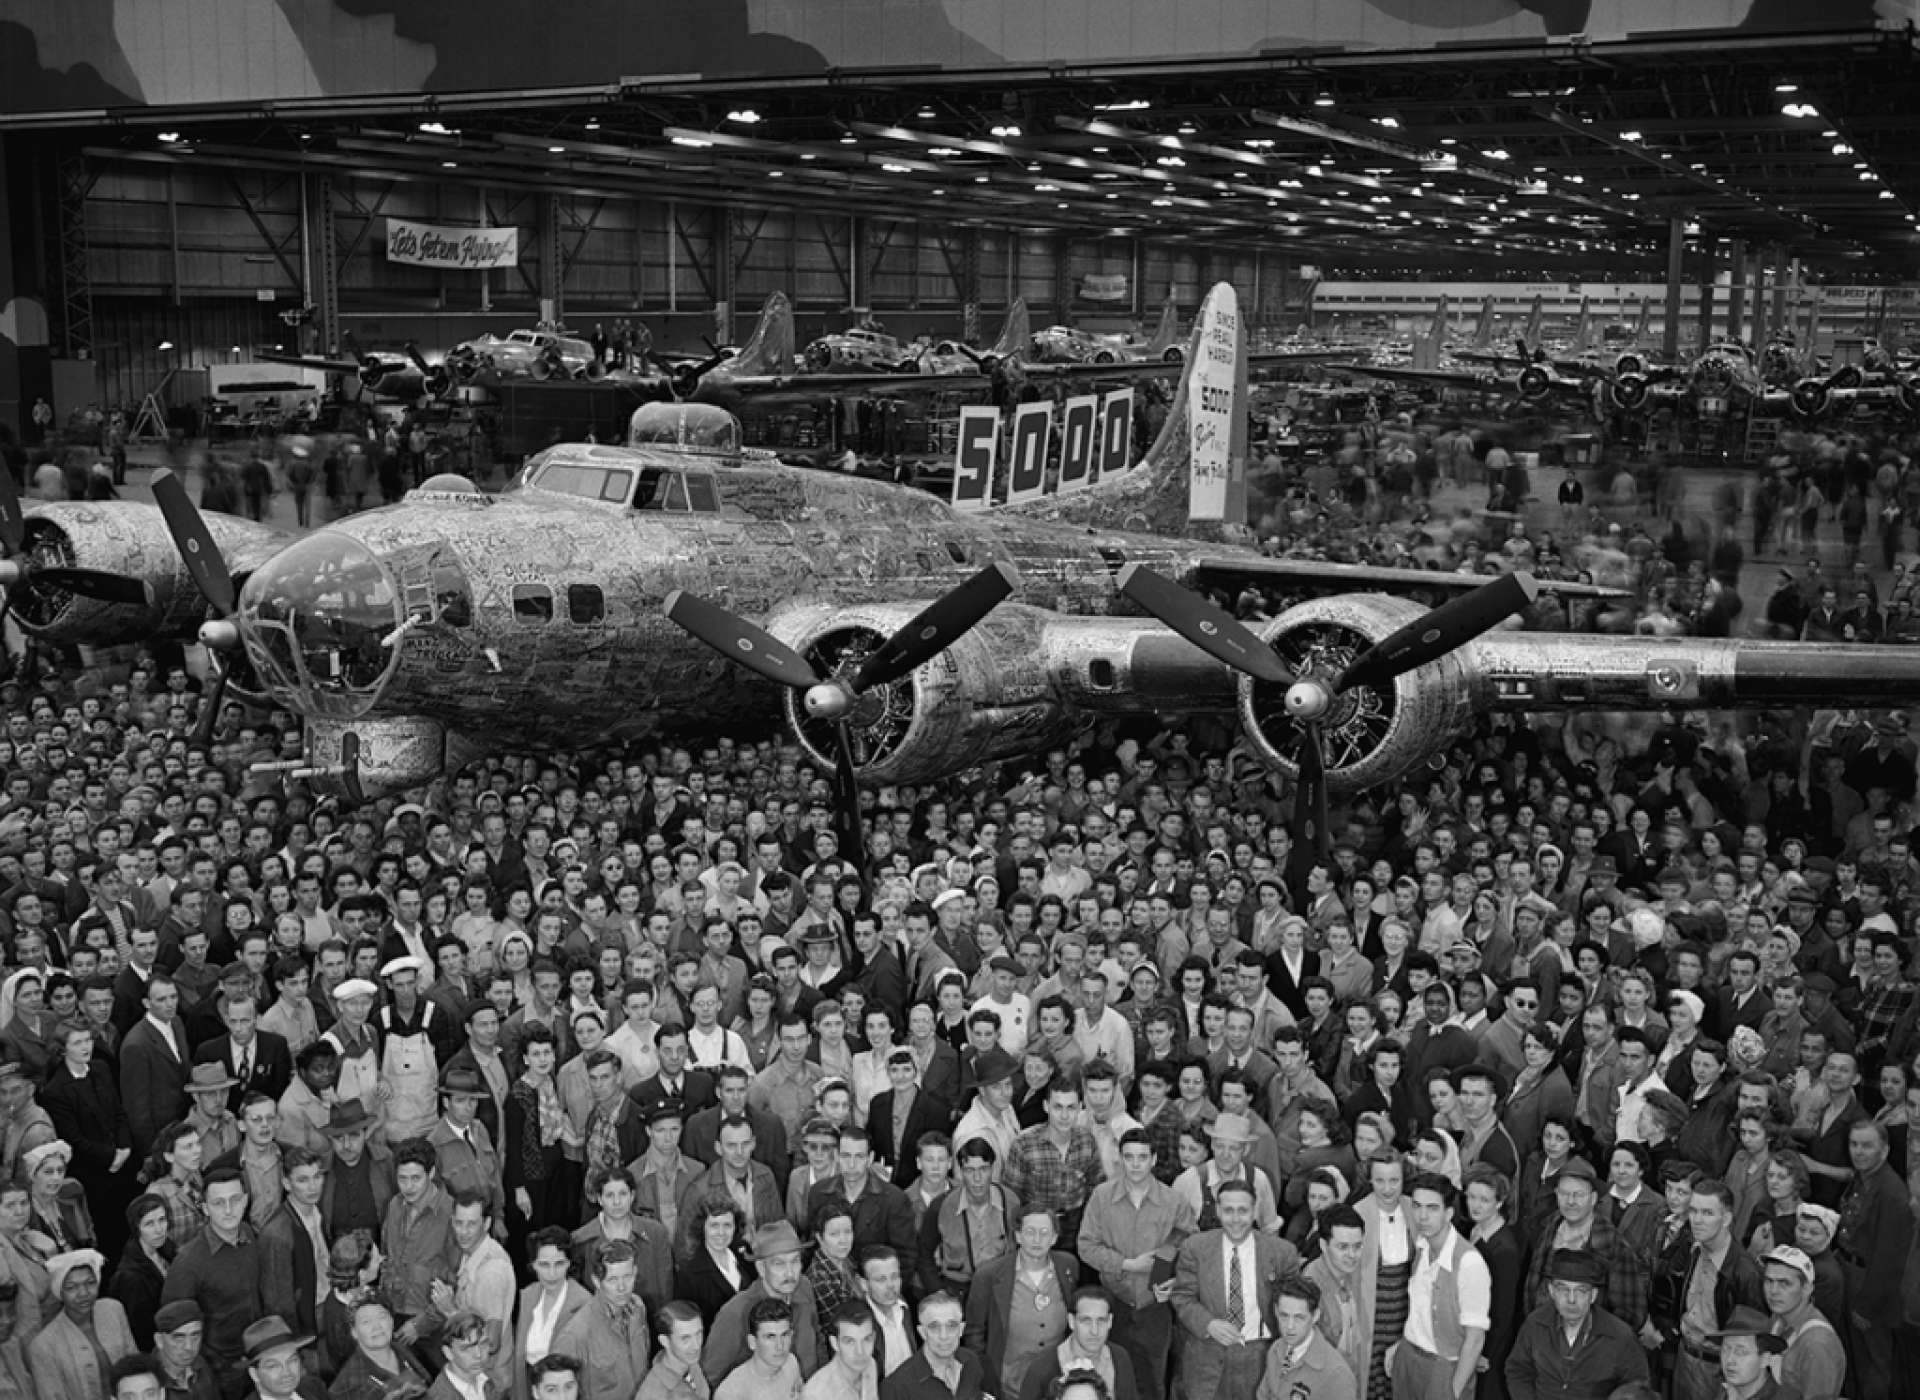 Boeing Belle, Boeing Company, WWII